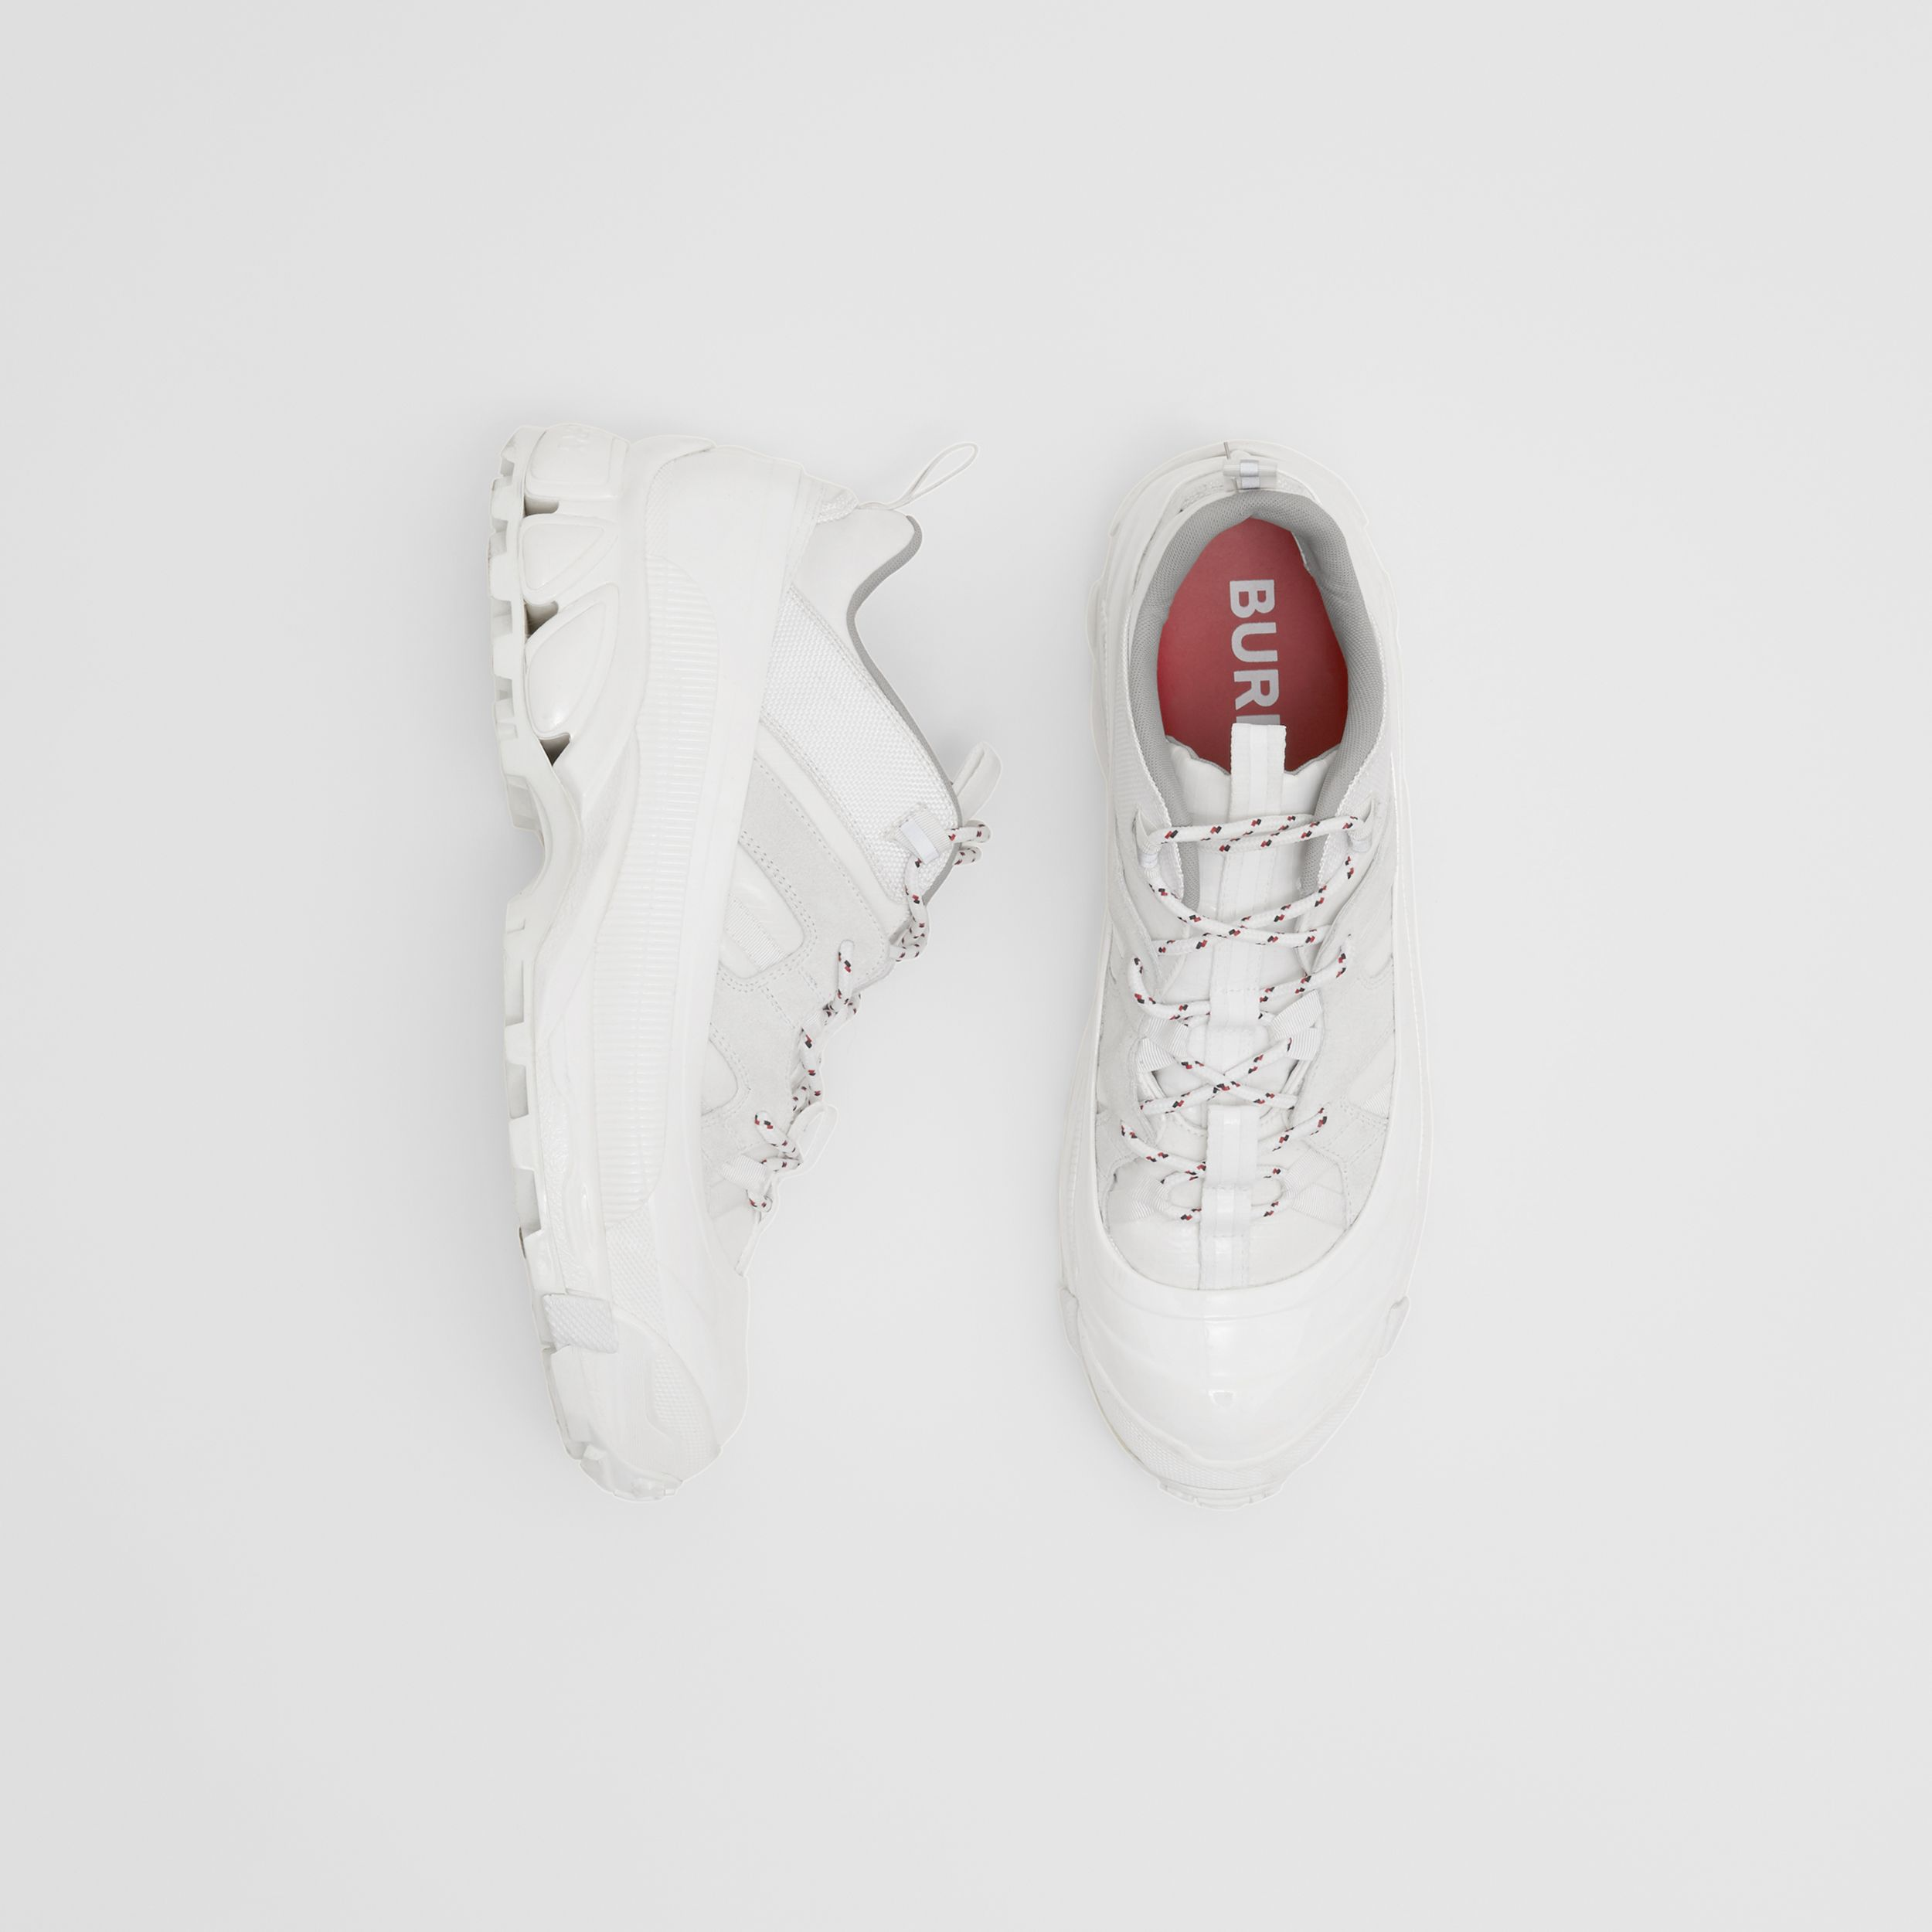 Nylon and Suede Arthur Sneakers in Off White | Burberry - 1